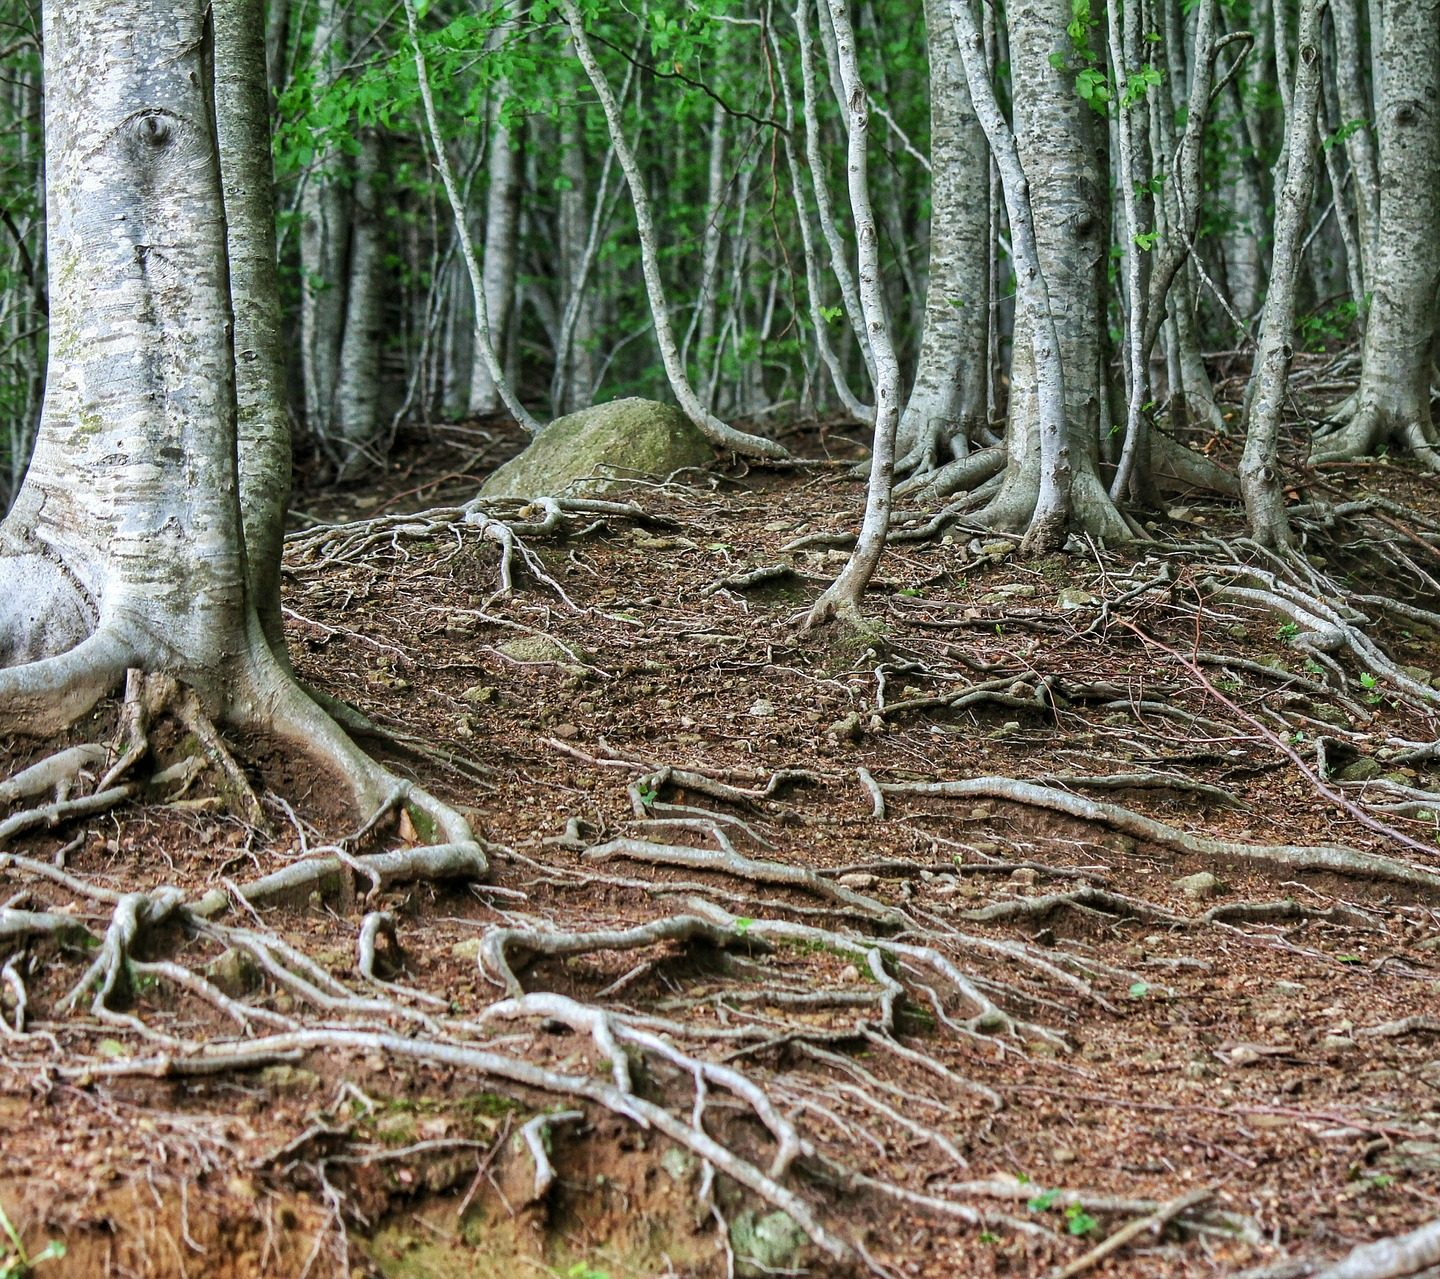 Divining roots—revealing how plants branch out to access water